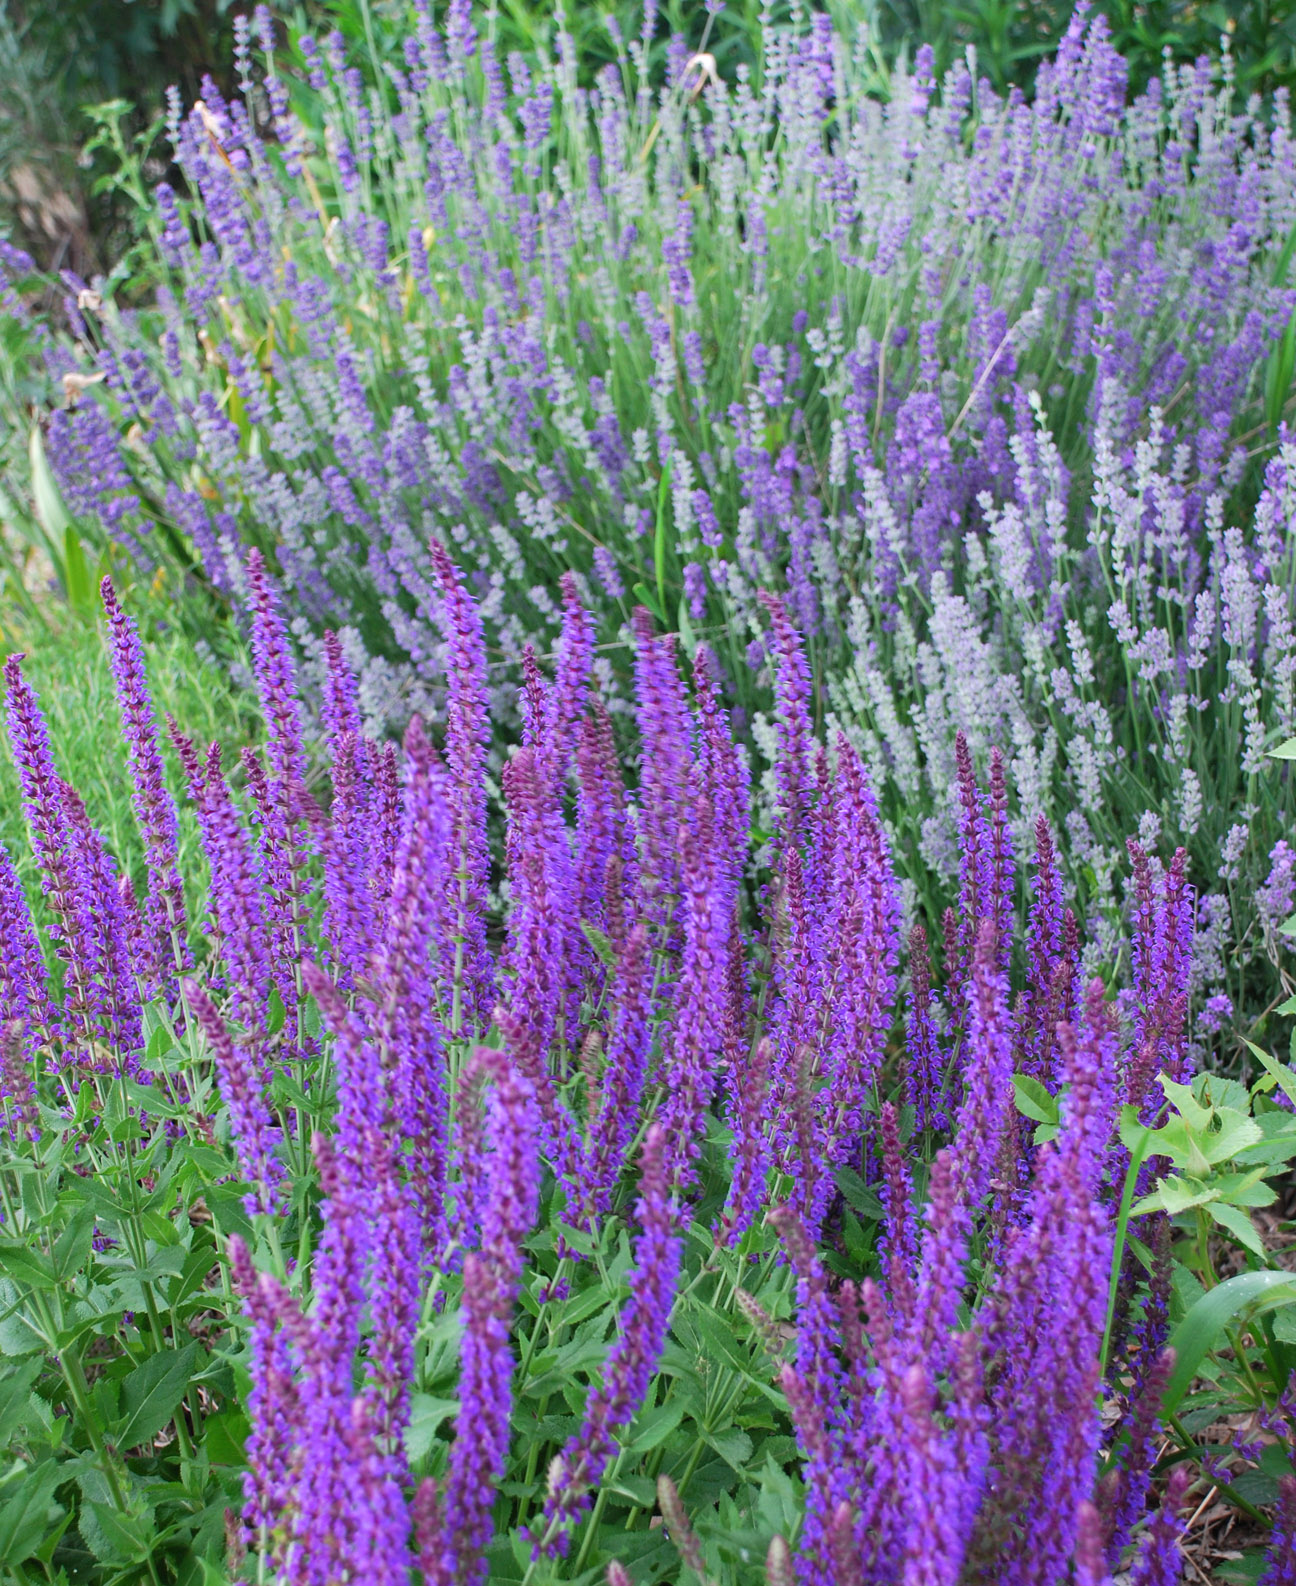 Salvia And Lavender Two Of The Spiky Purple Plants These Are Reliable In Hot Dry Weather With A Long Season Bloom